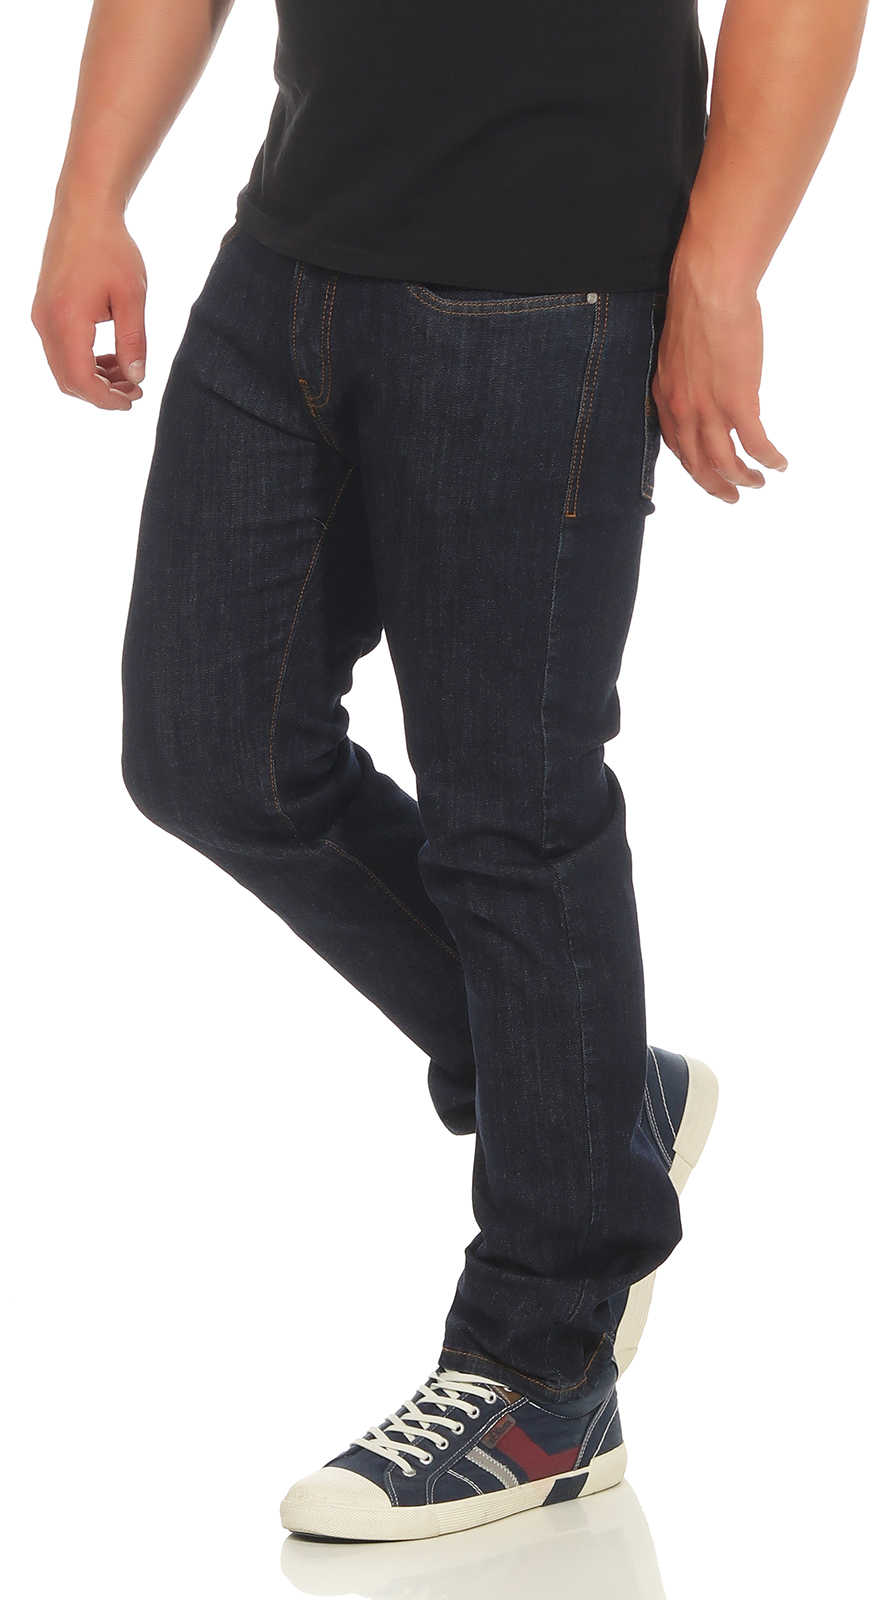 PIERRE-CARDIN-Herren-Jeans-Lyon-Hose-Tapered-Future-Flex-Super-Stretch-Premium-3 Indexbild 3